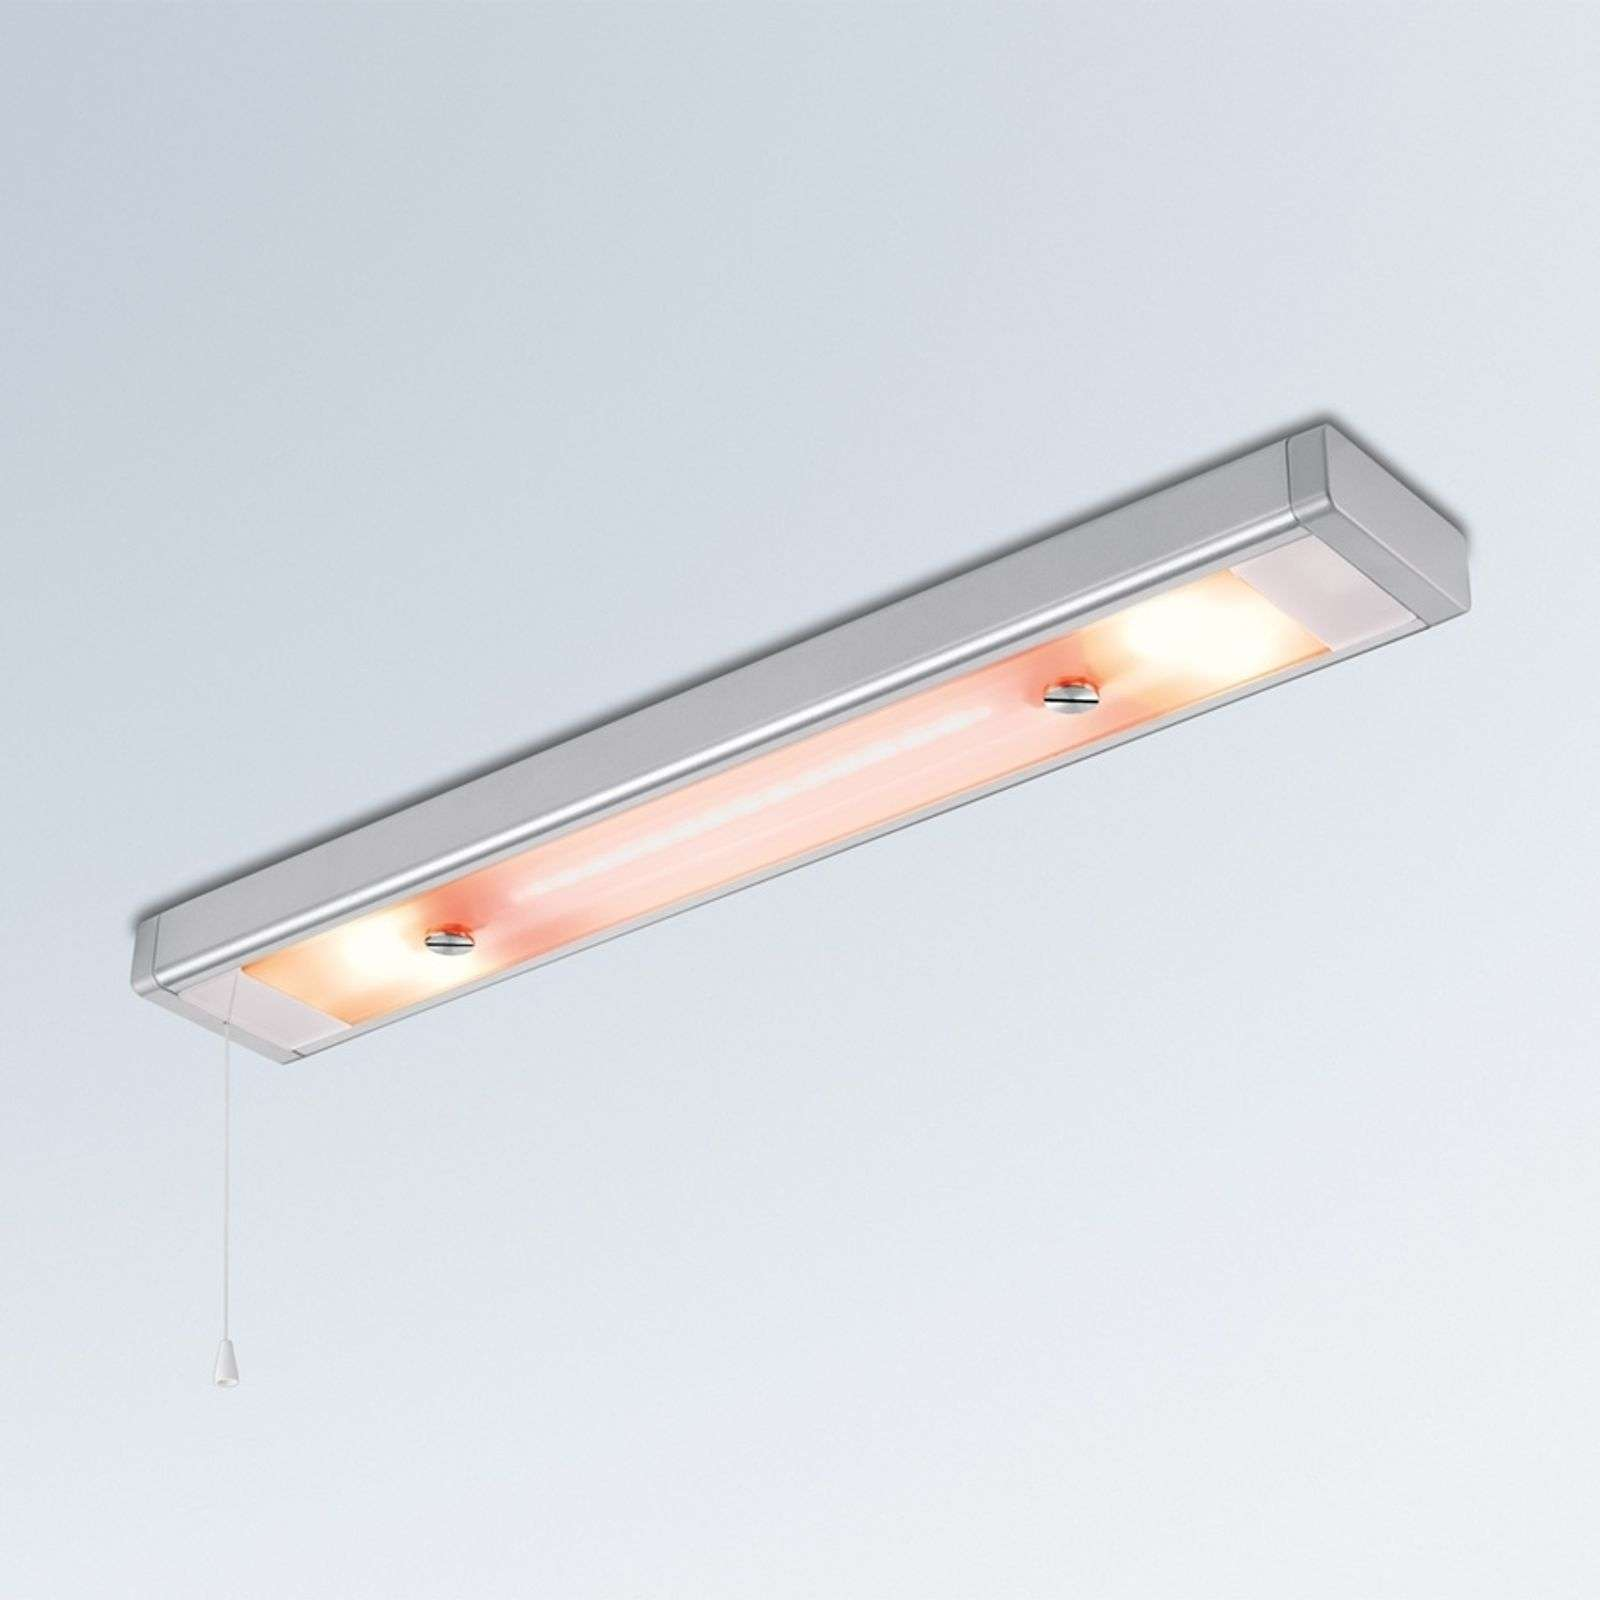 Lampada alogena da soffitto a infrarossi SUNSITIVE